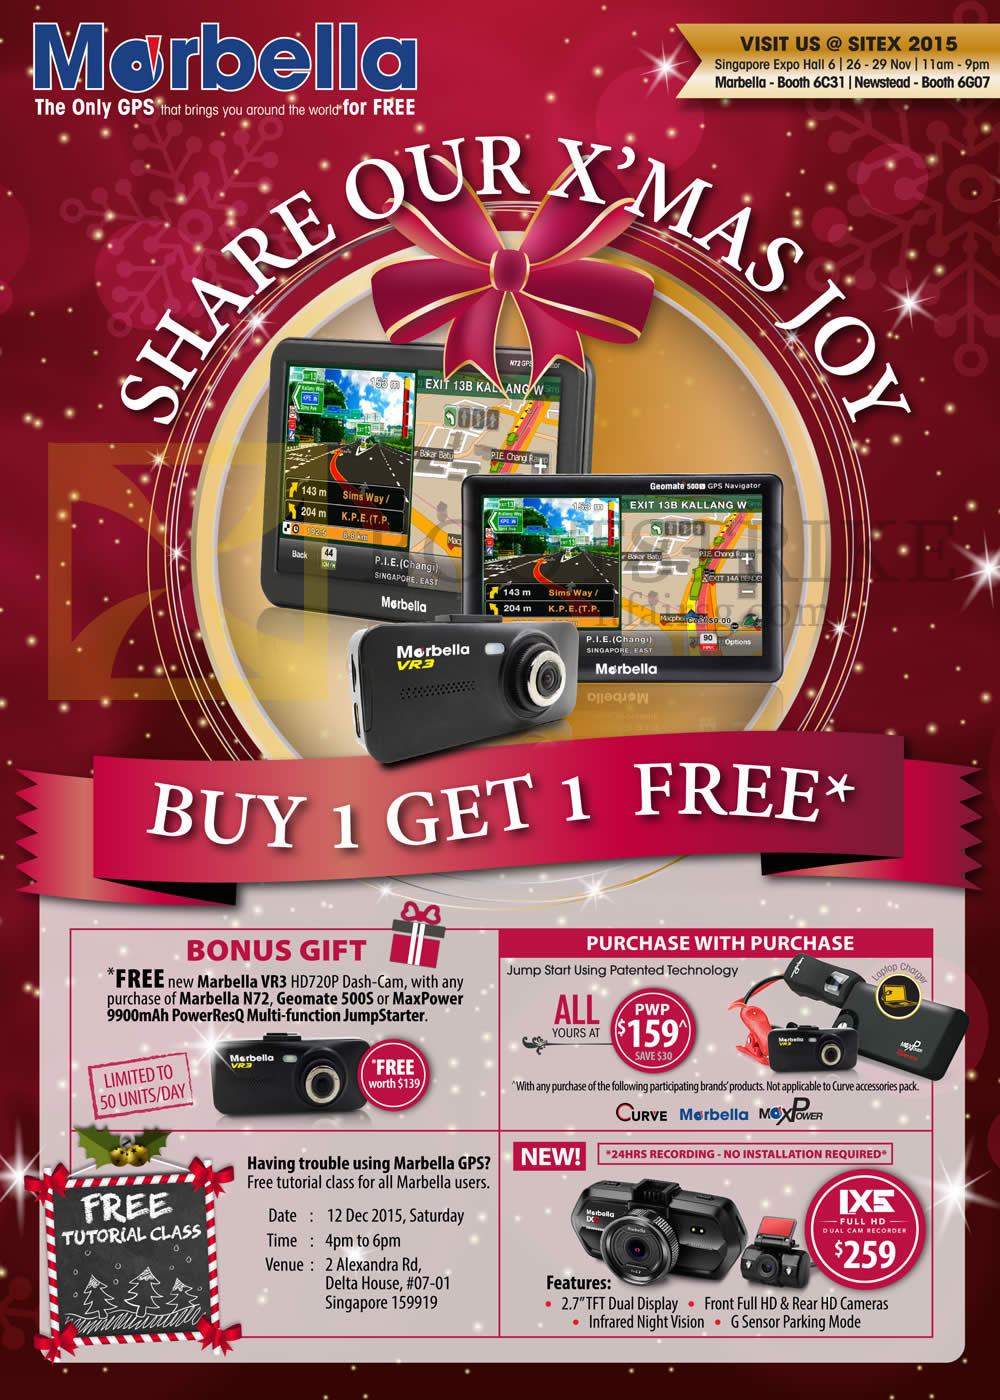 SITEX 2015 price list image brochure of Maka GPS Marbella Buy 1 Get 1 Free, Bonus Gift, Purchase With Purchase